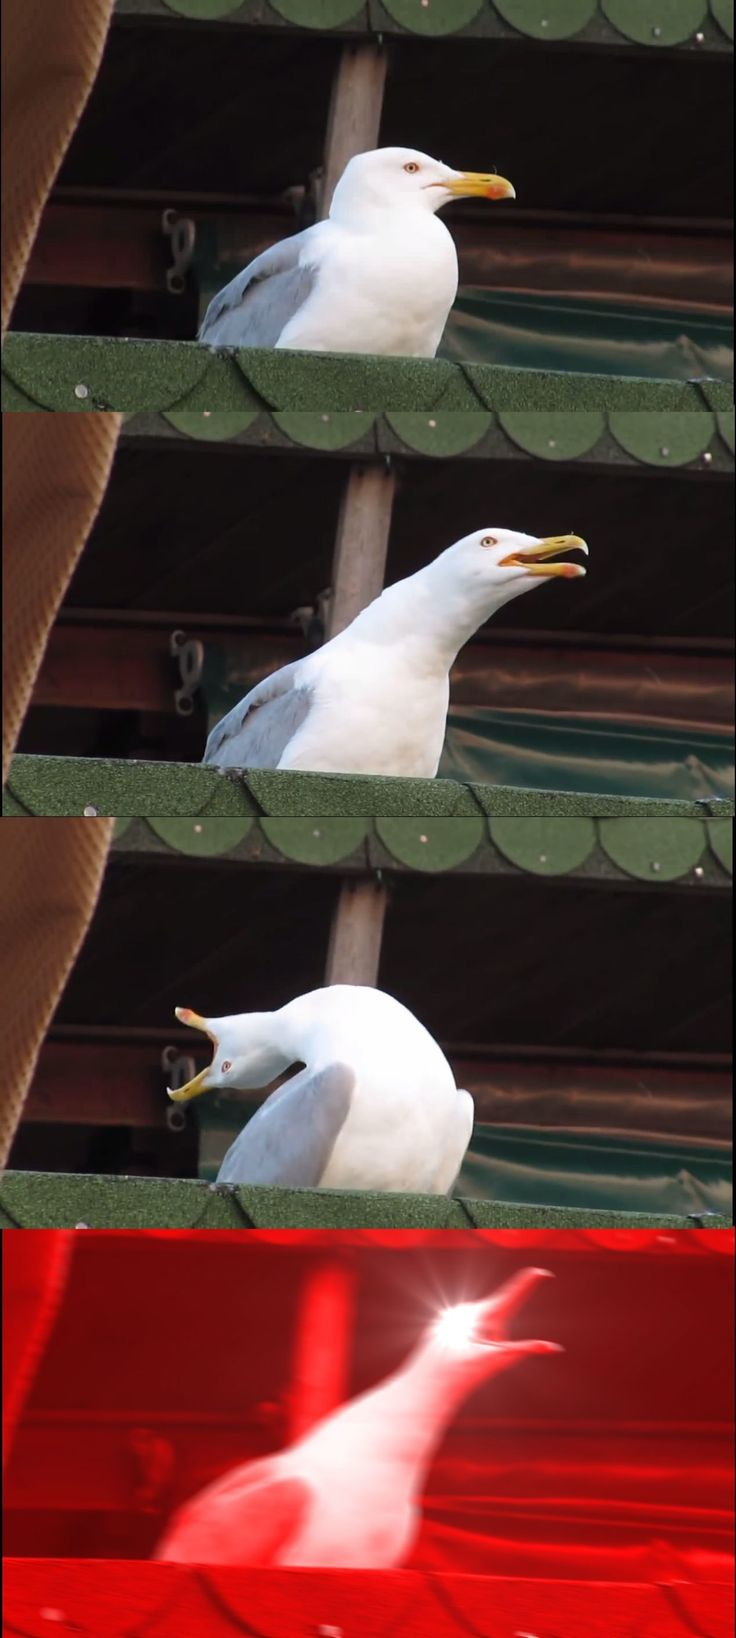 Inhaling Seagull Meme Template in 2020   Memes funny faces ...